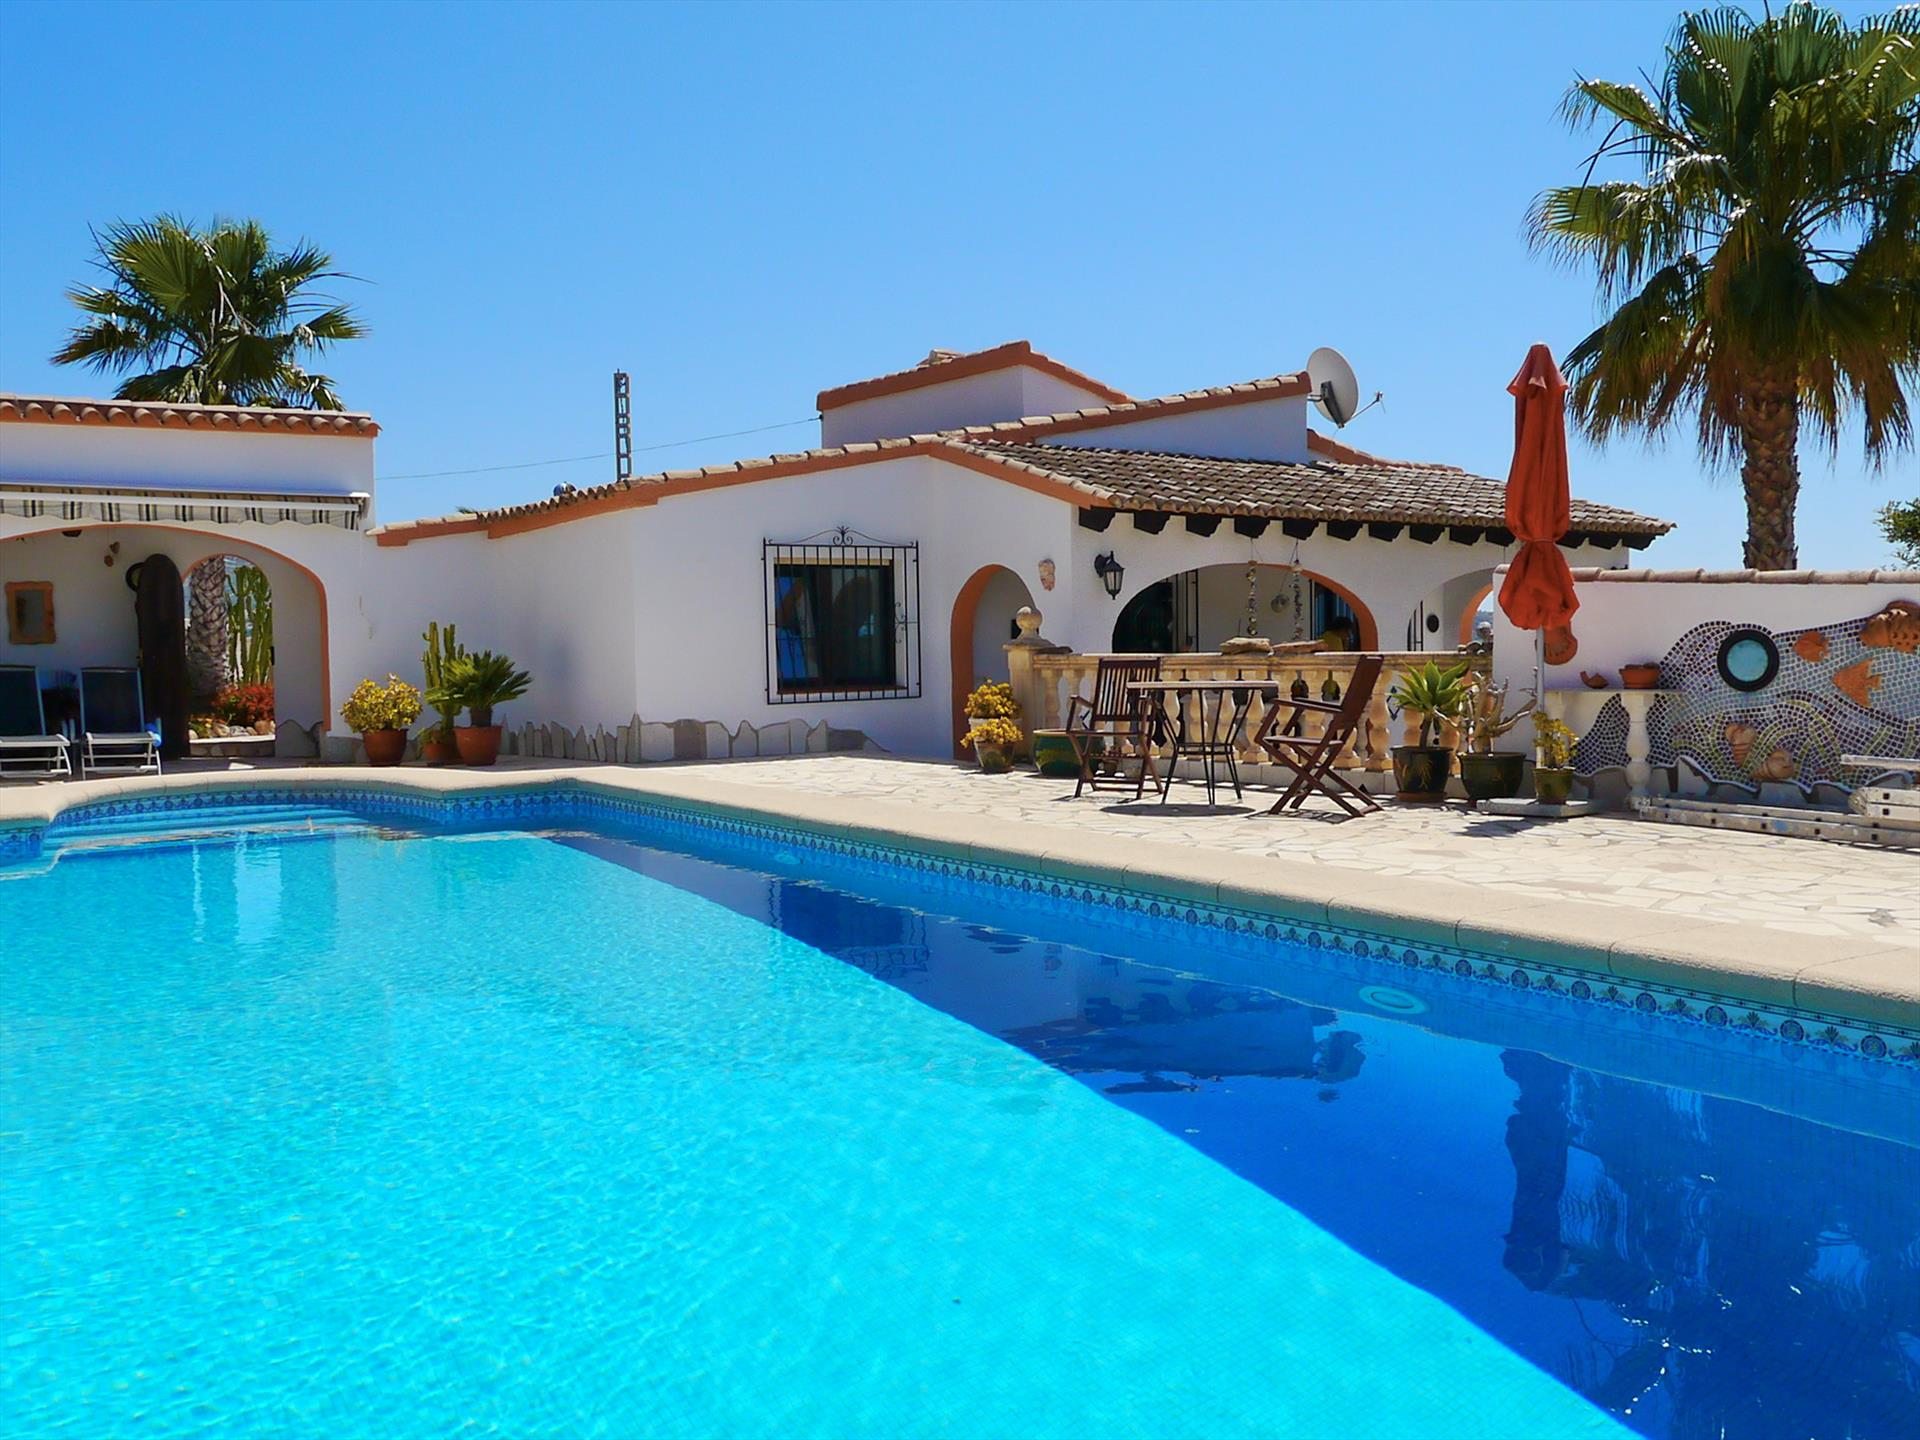 Flor - Alquileres Villamar, Wonderful and comfortable villa in Moraira, on the Costa Blanca, Spain  with private pool for 3 persons.....